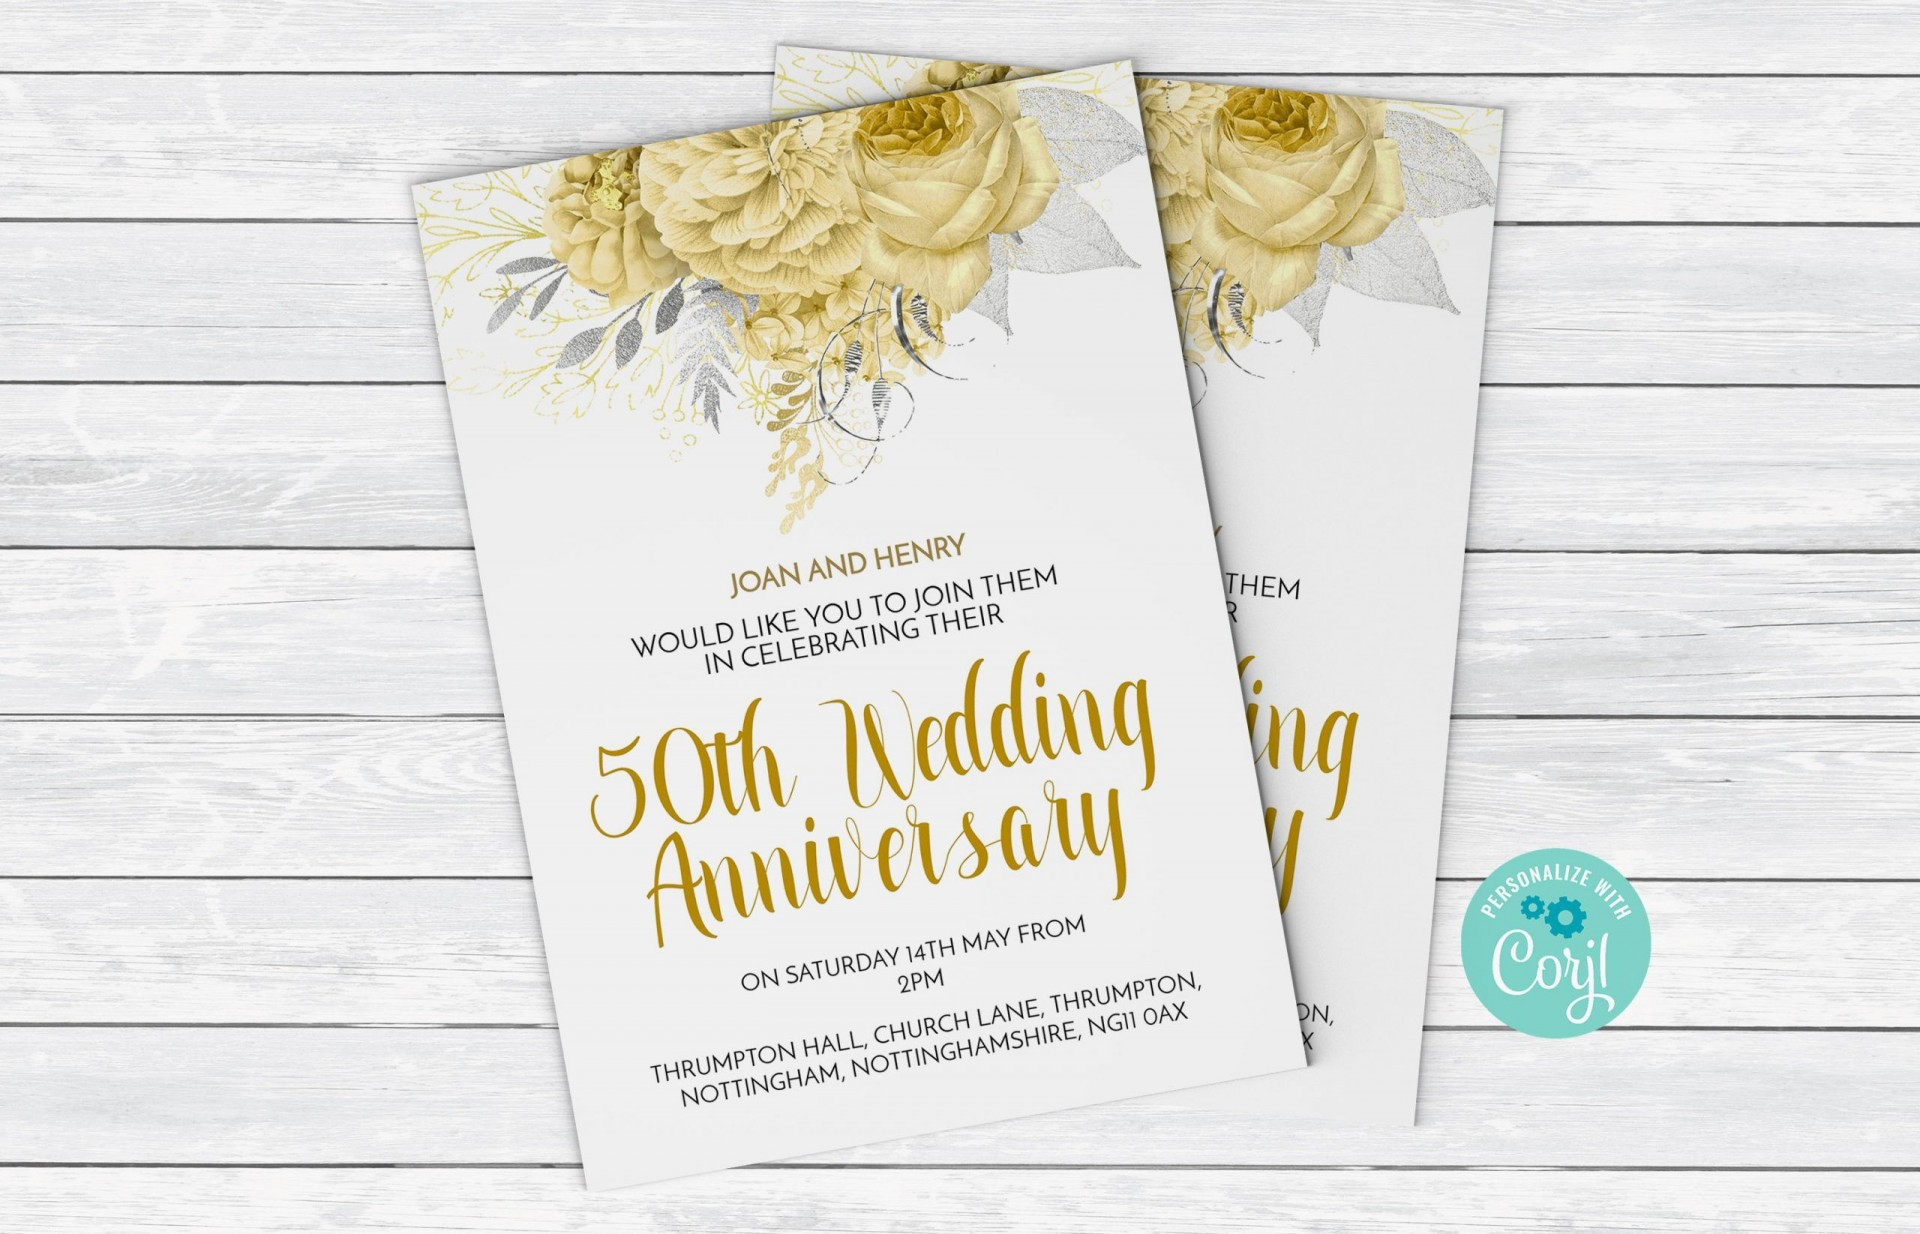 003 Staggering 50th Anniversary Invitation Template High Resolution  Wedding Microsoft Word Free Download1920